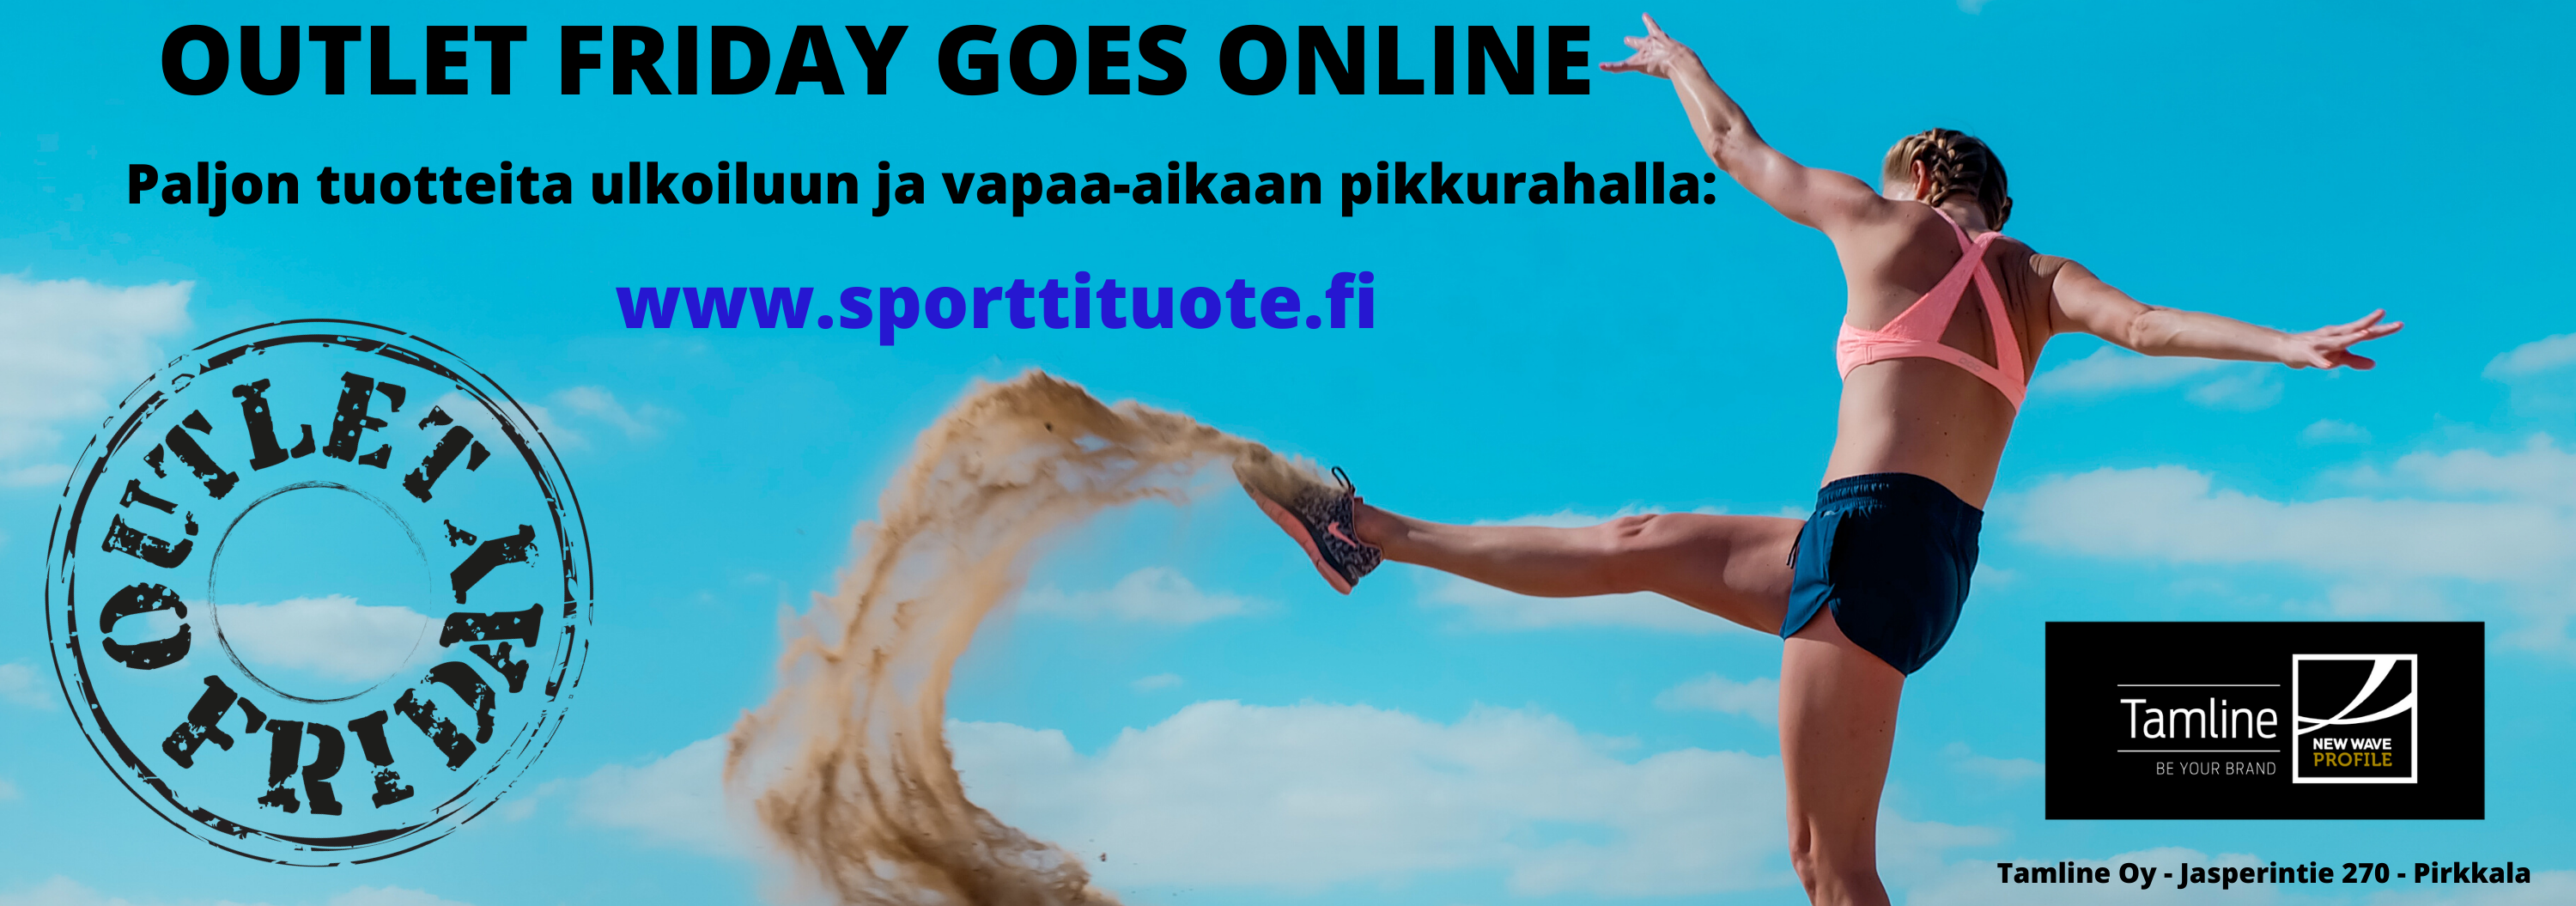 Outlet Friday Goes Online - huhtikuu